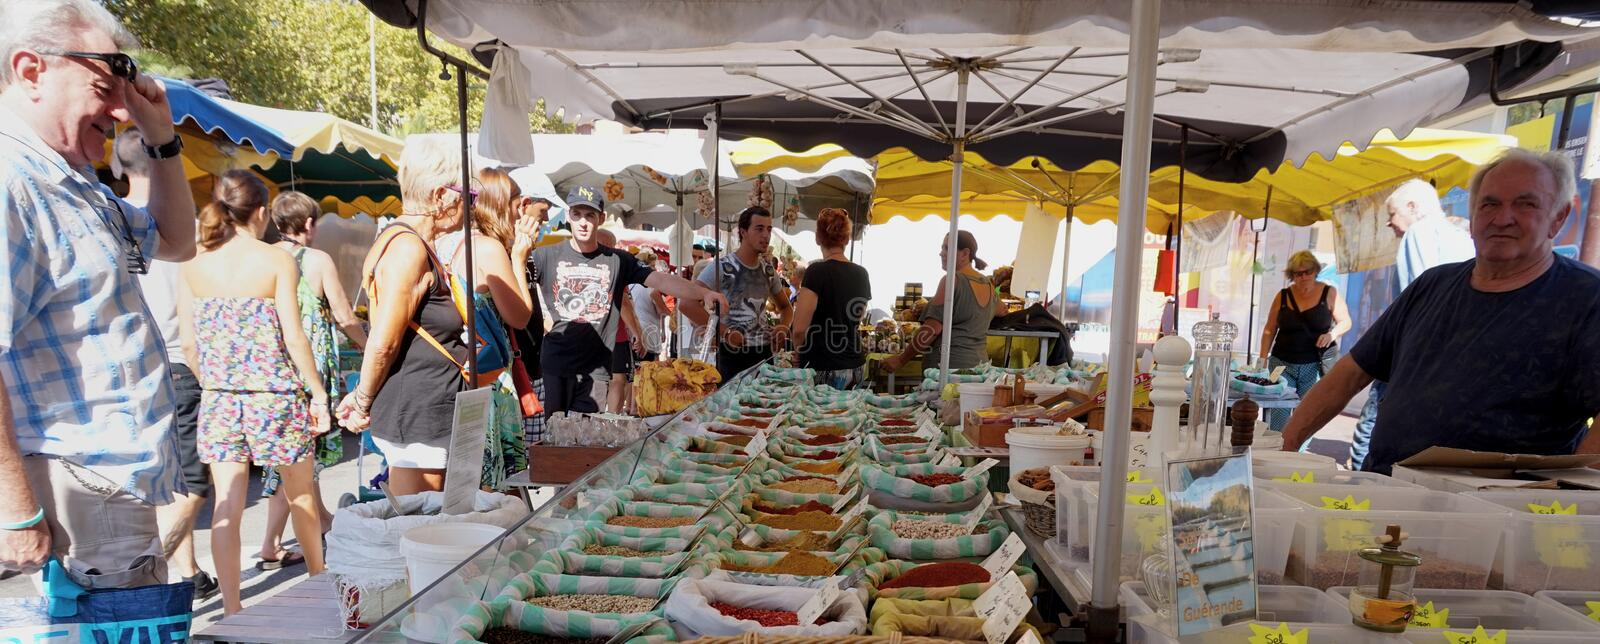 St AYGULF, VAR, PROVENCE, FRANCE, AUGUST 26 2016: Provencal market stall selling fresh loose spices and other items to locals and stock photo